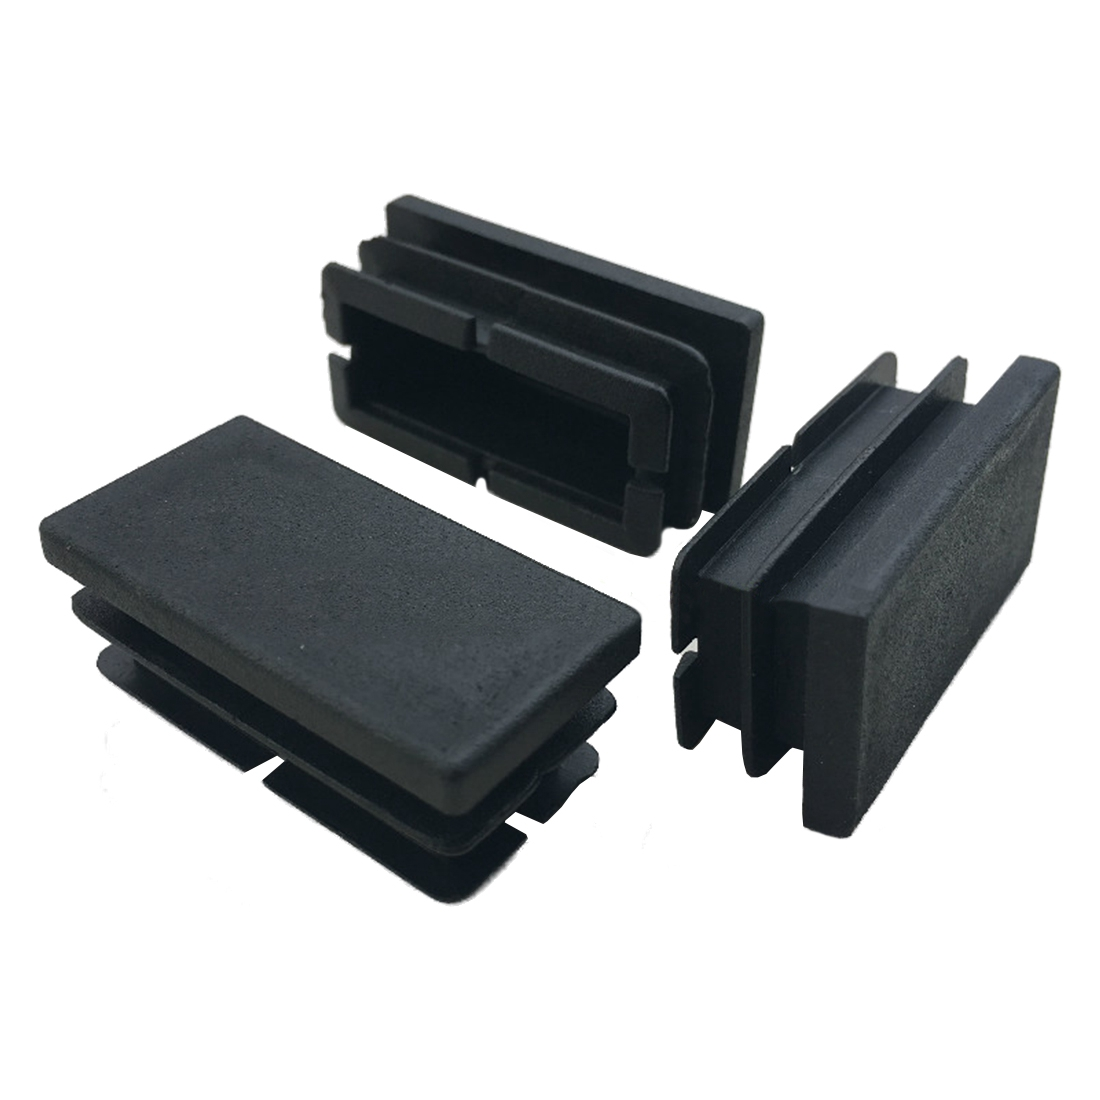 Promotion! 8 Pcs Black Plastic Rectangular Blanking End Caps Inserts 20mm X 40mm